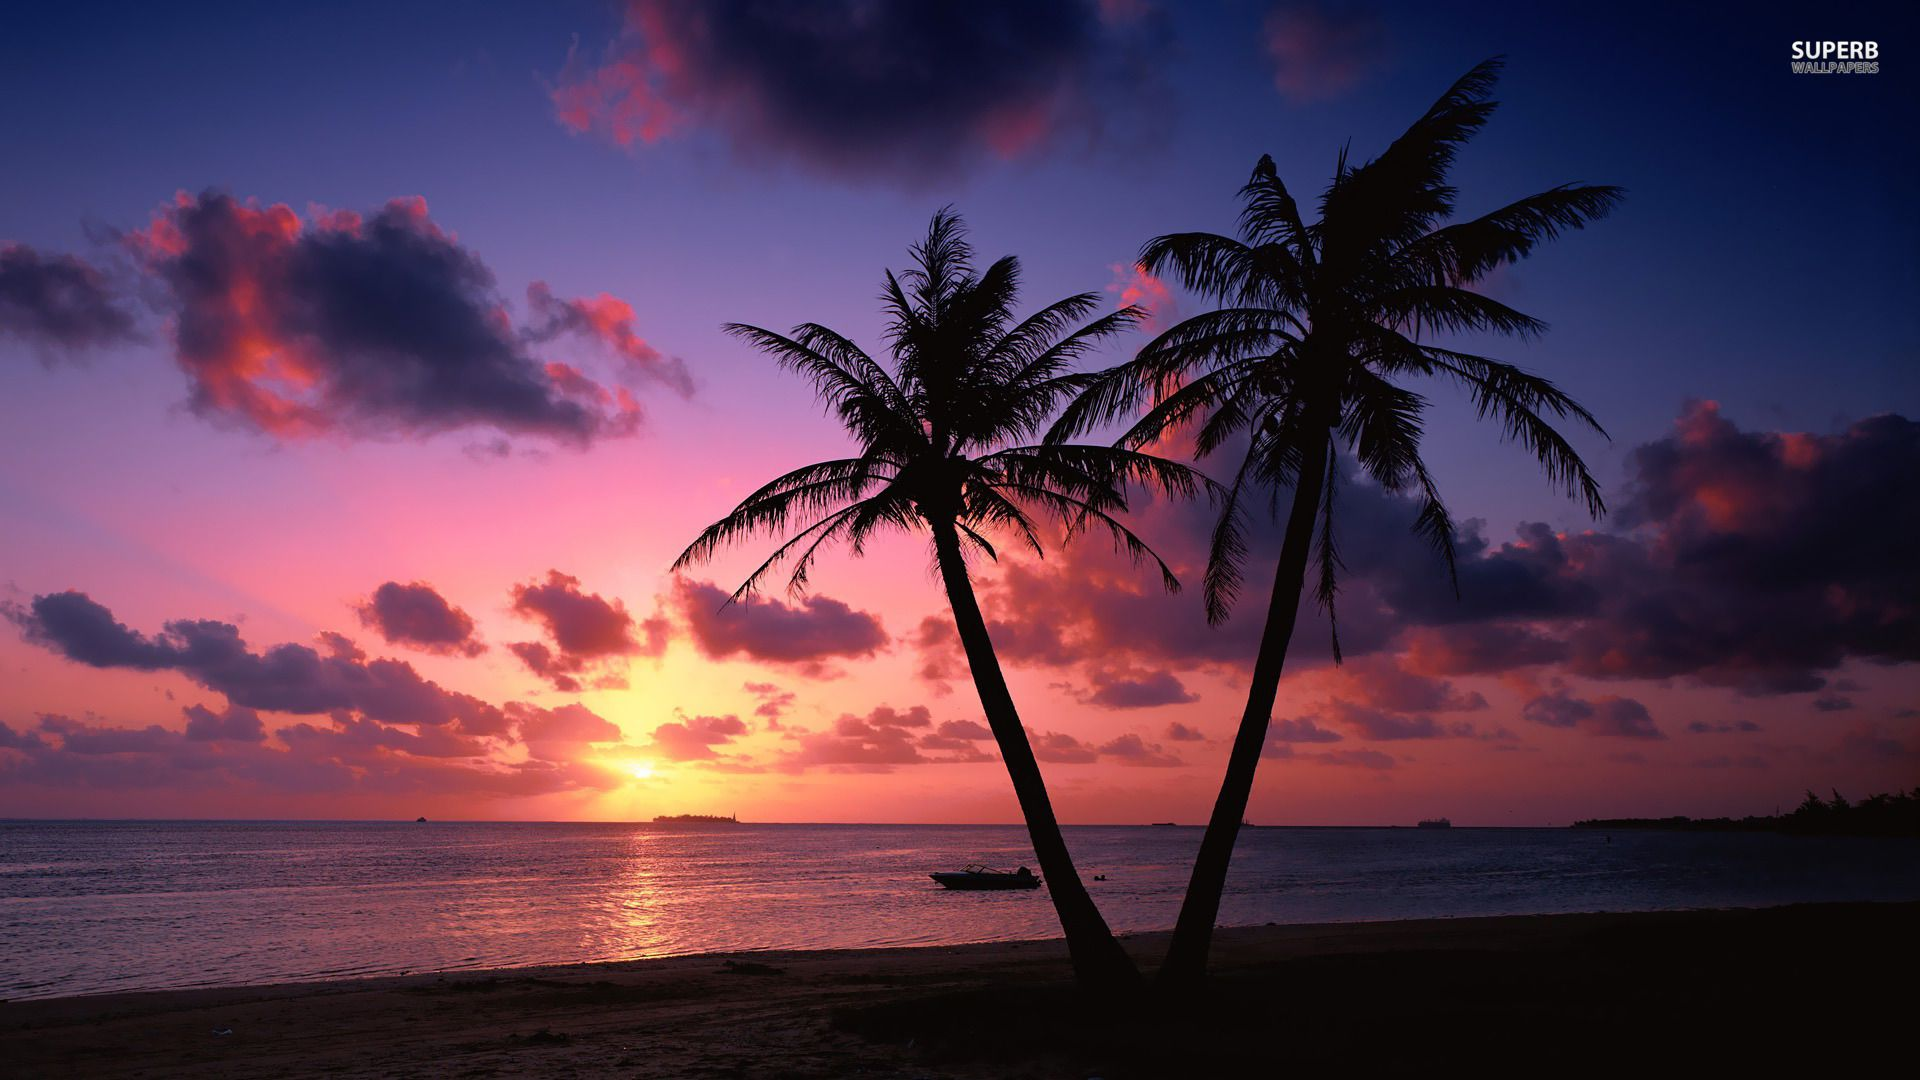 Ocean Sunset Hd Wallpaper 1366x768 6760 Beach Sunset Wallpaper Sunset Wallpaper Sunset Landscape